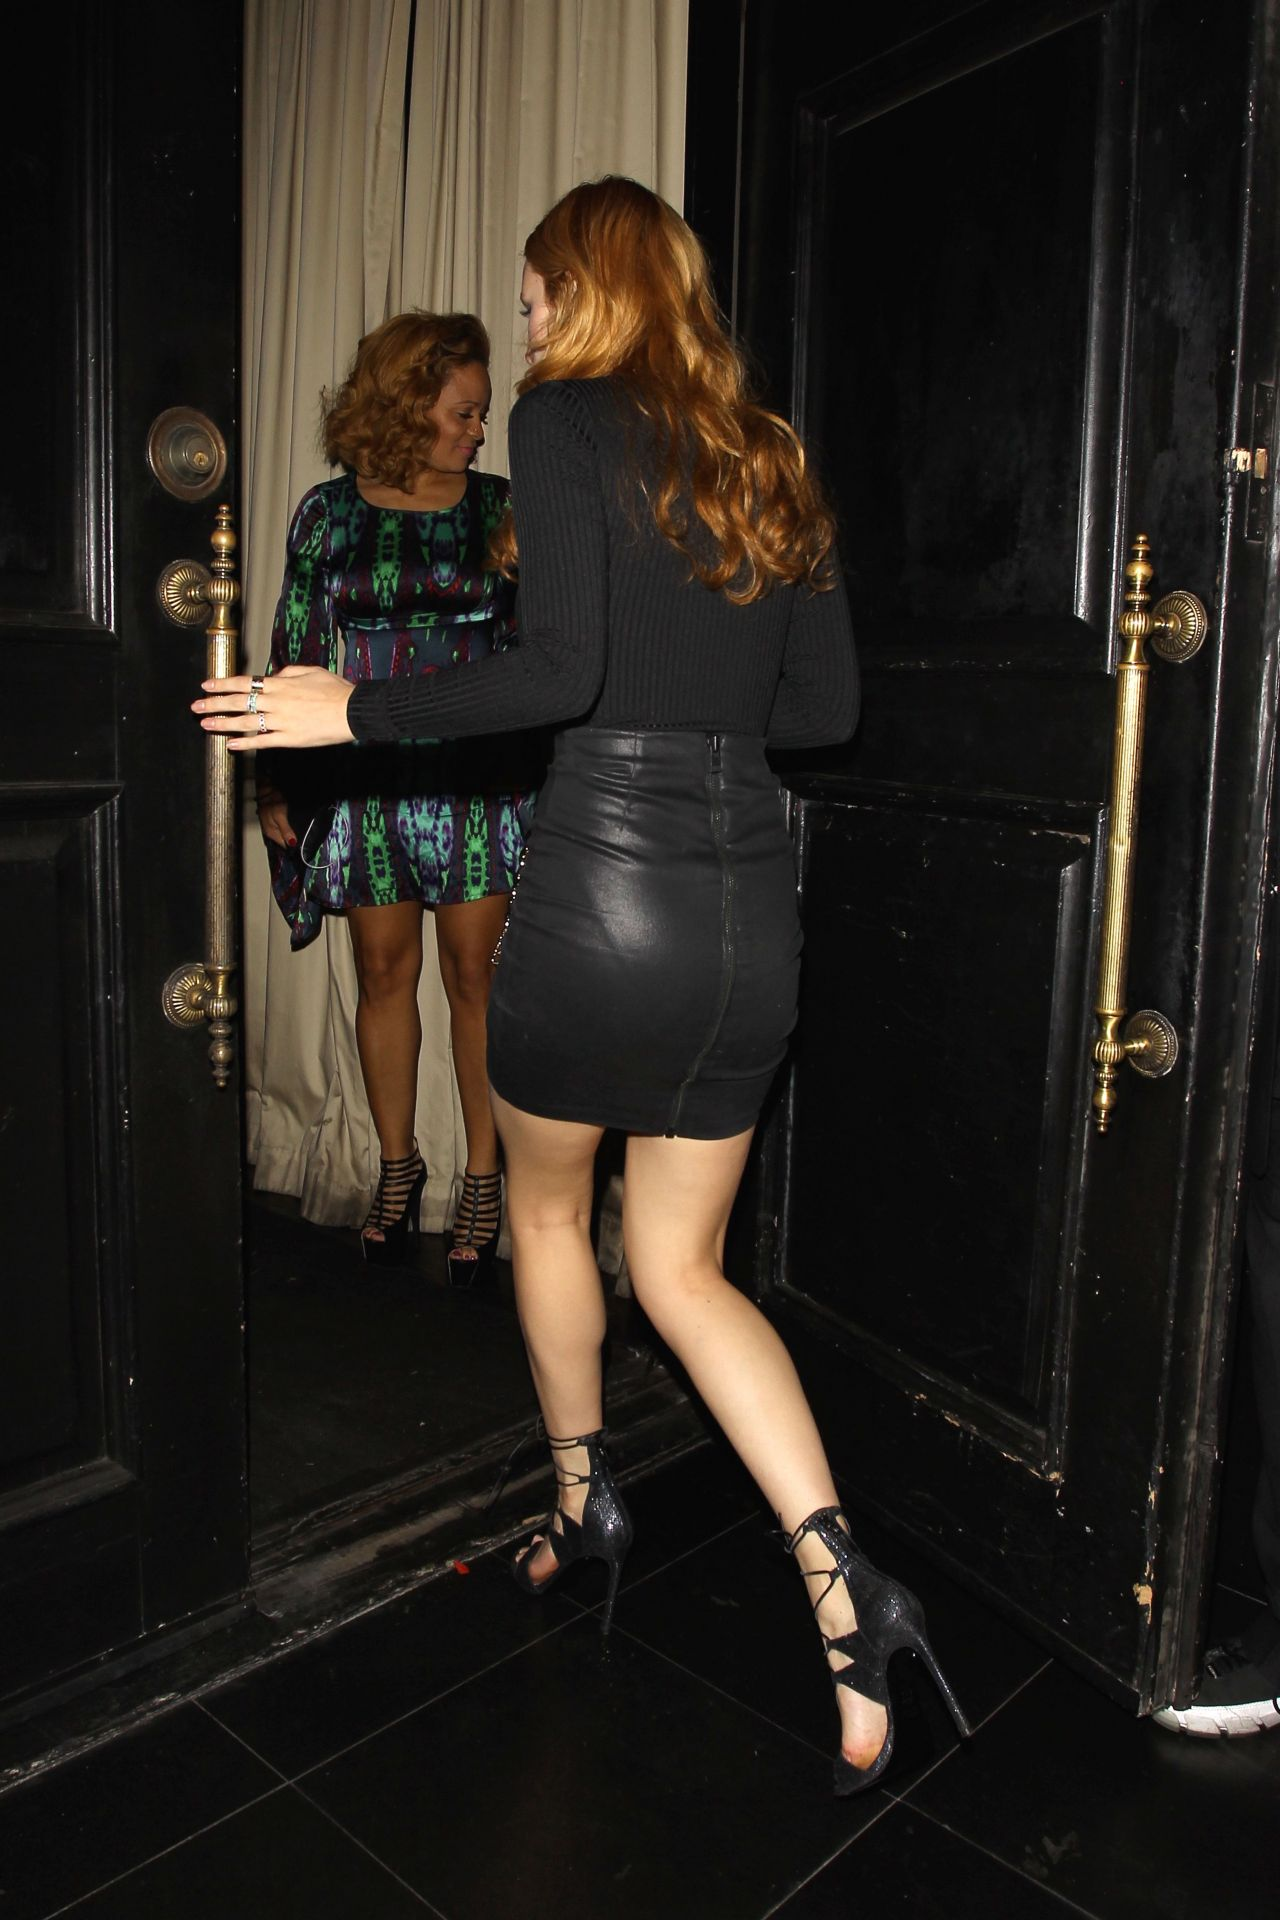 bella-thorne-leaving-beso-restaurant-in-hollywood-october-2015_17